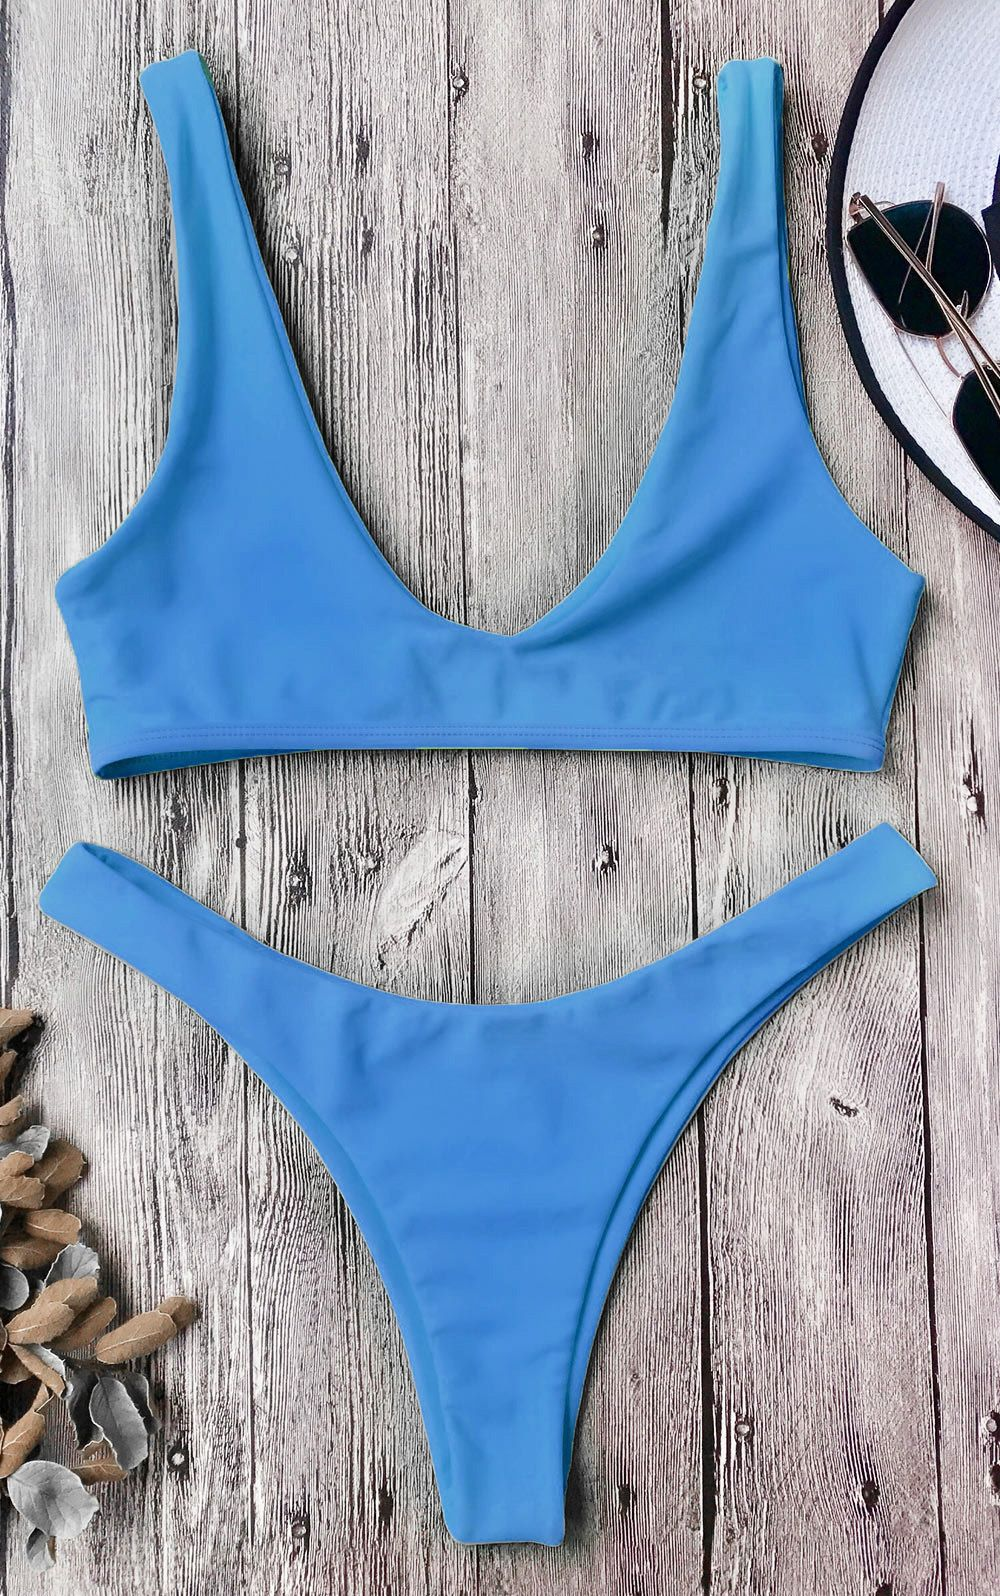 b5bf86d91bbcc A sleek solid scoop bathing suit features pullover style bralette bikini  crop top and high cut legs swim bottoms